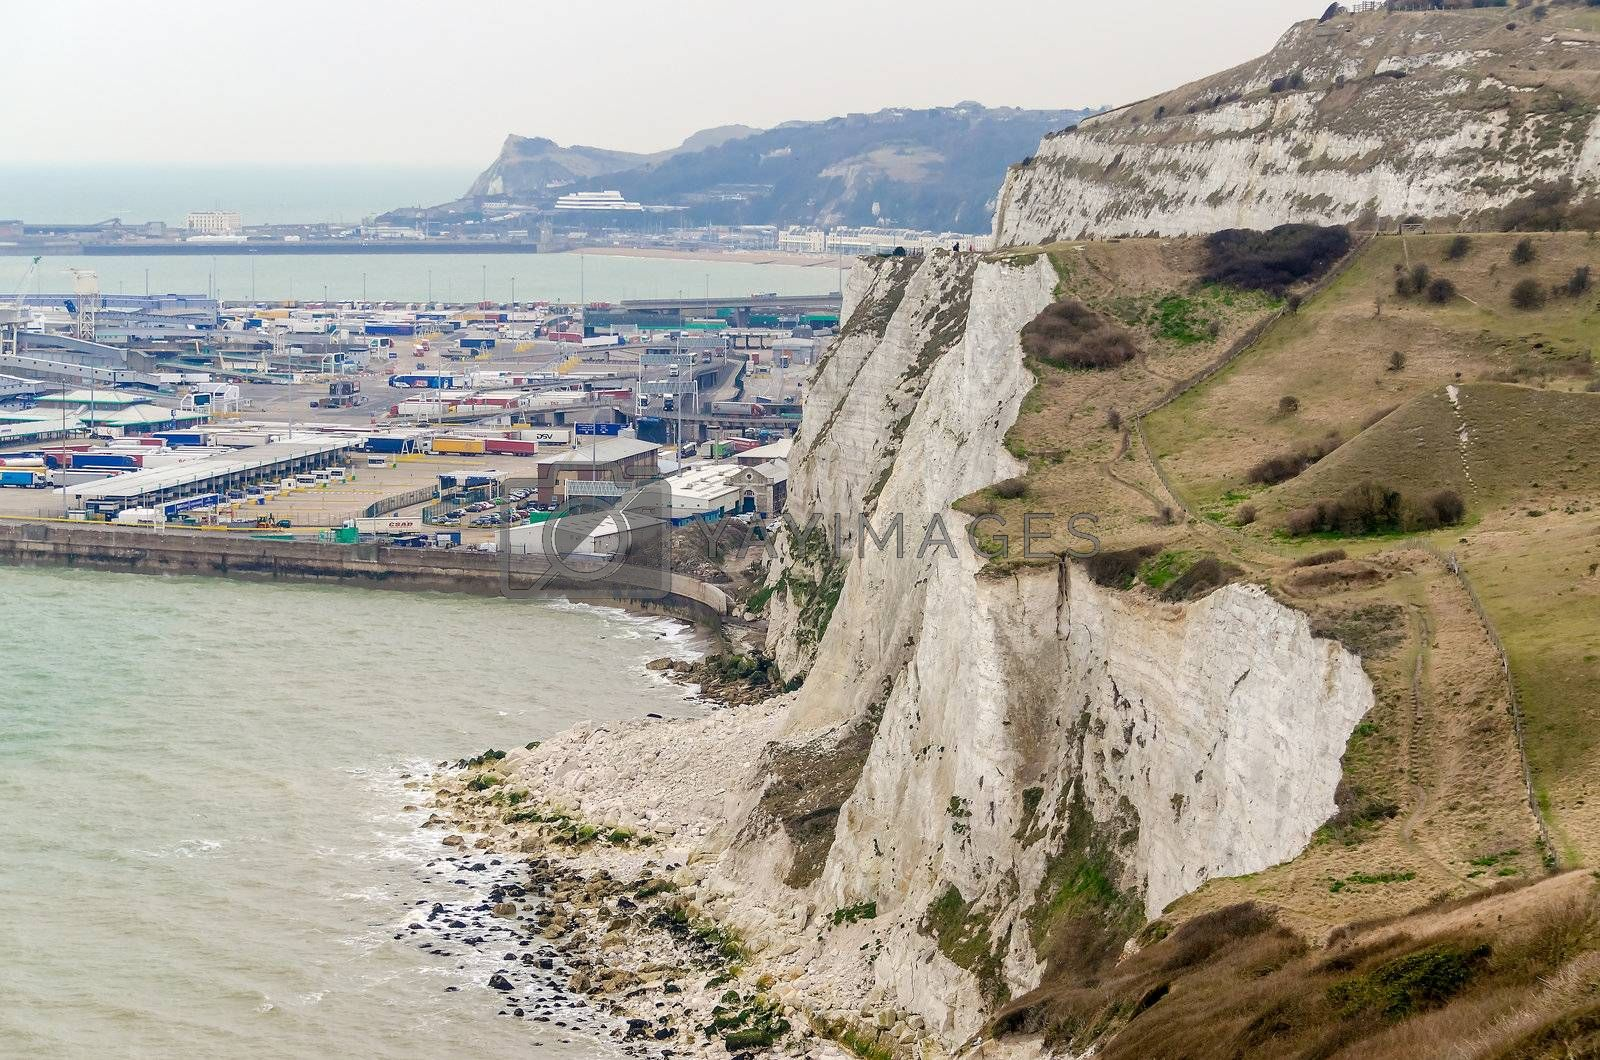 The White Cliffs of Dover facing Continental Europe on the English Channel